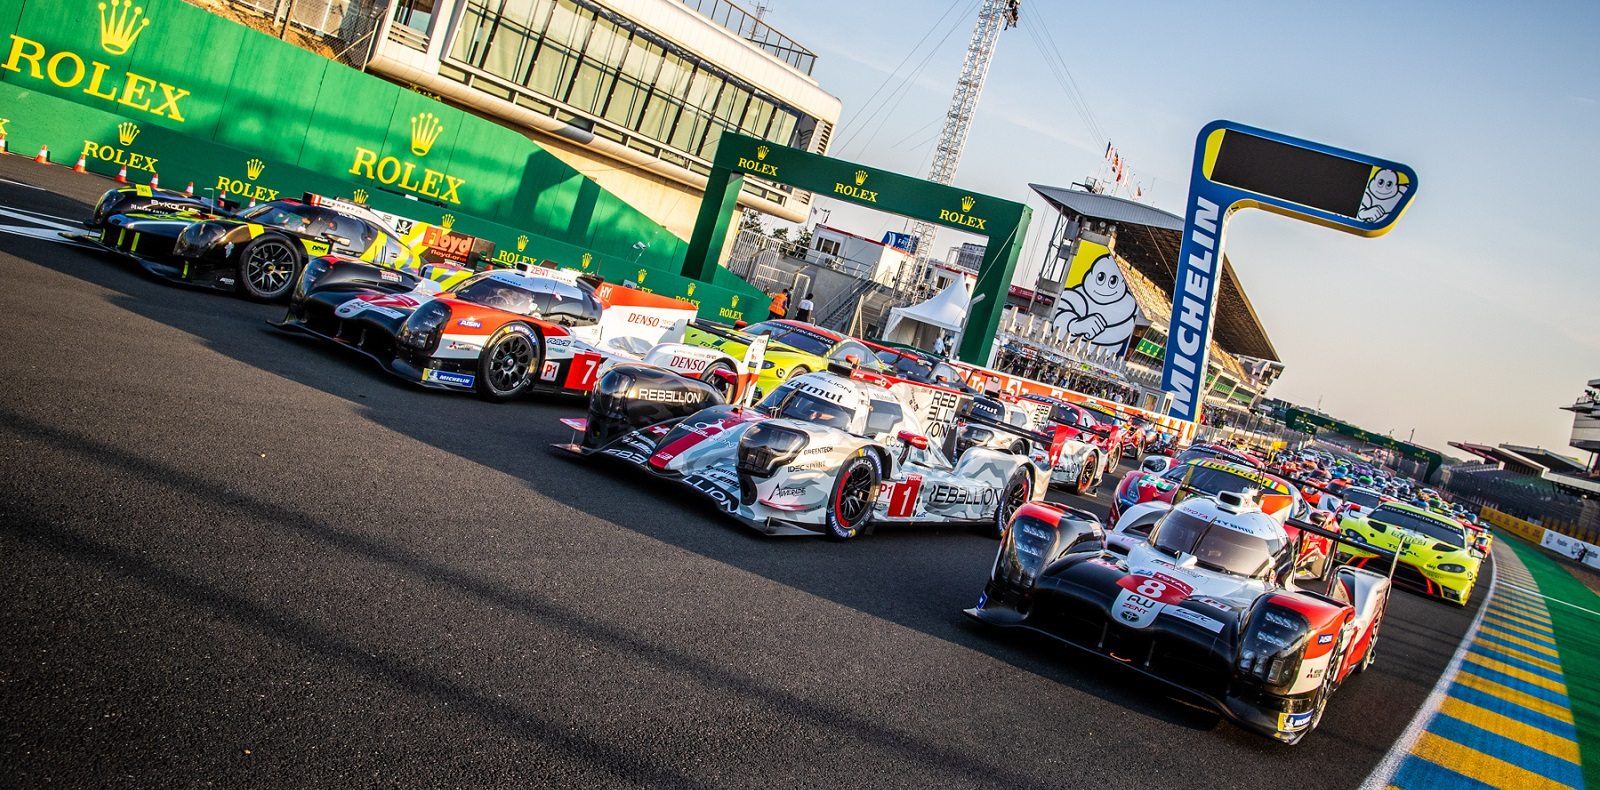 AUTO - 24 HOURS OF LE MANS 2020 - SCRUTINEERING